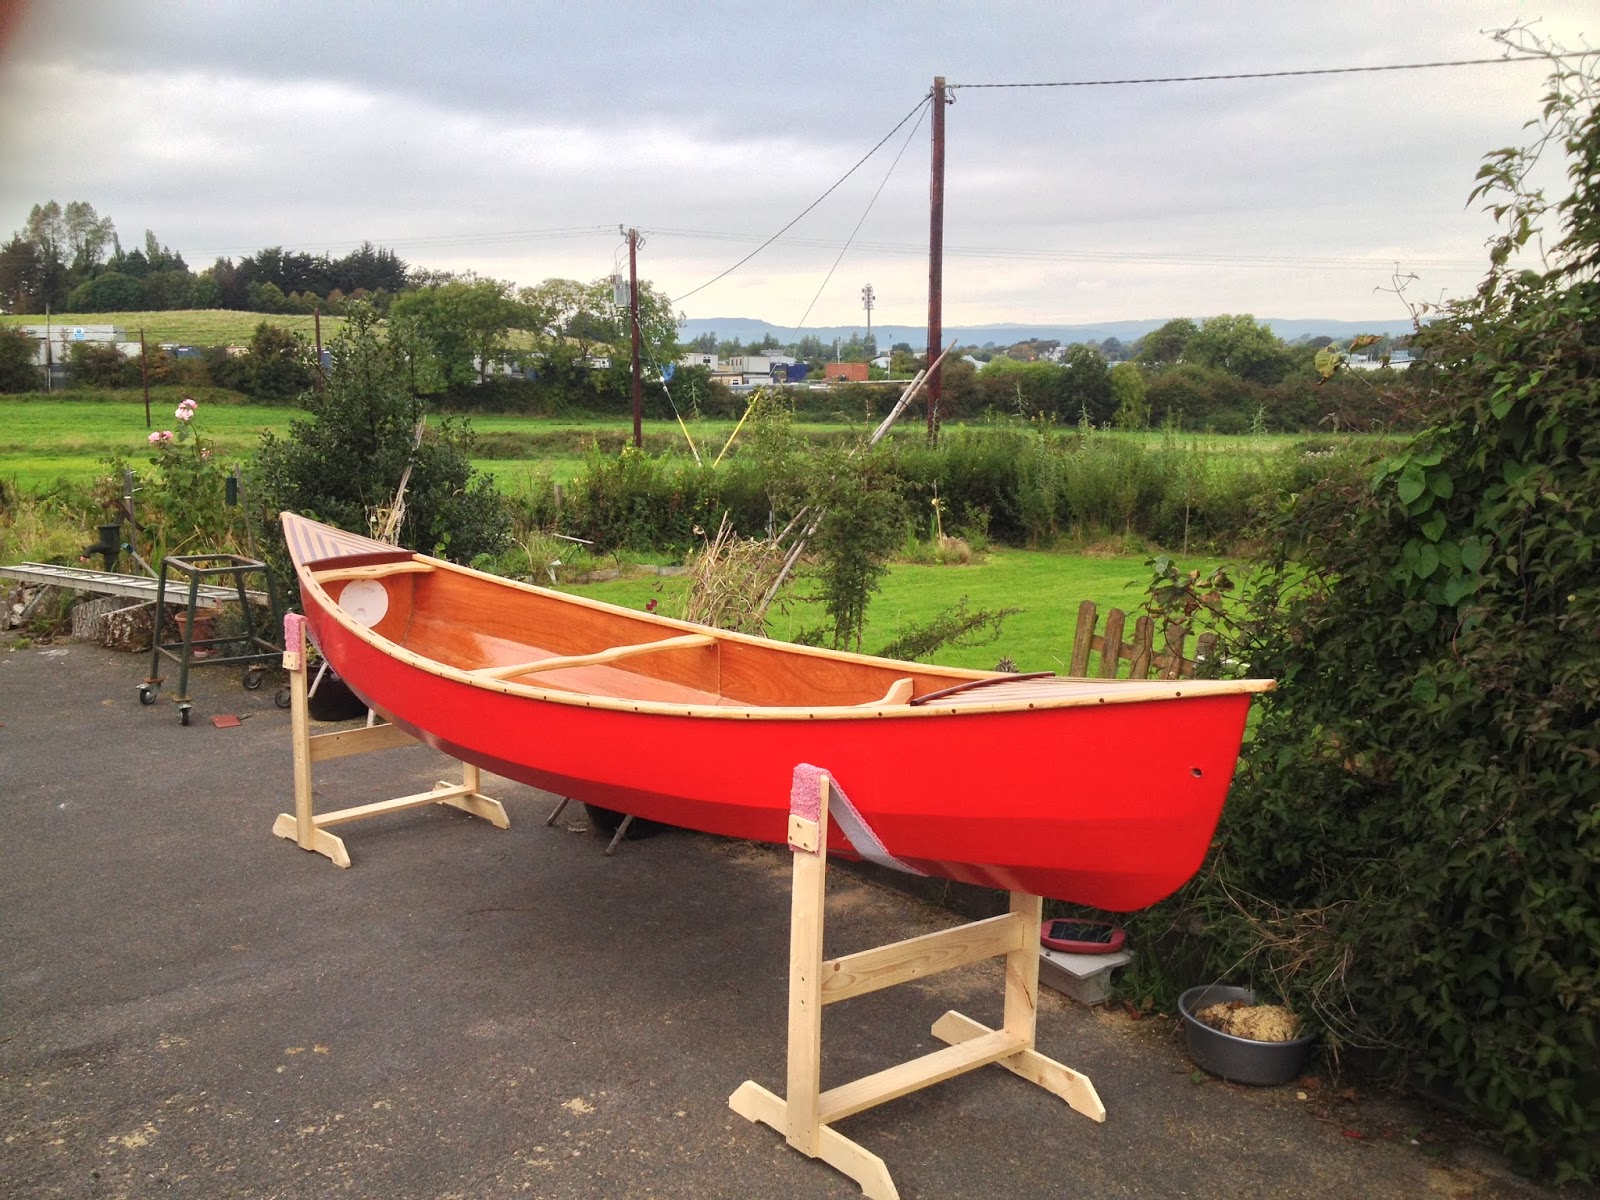 Waterman 16 - Canoe Build: Step 6 - Fitting Out for Sailing!